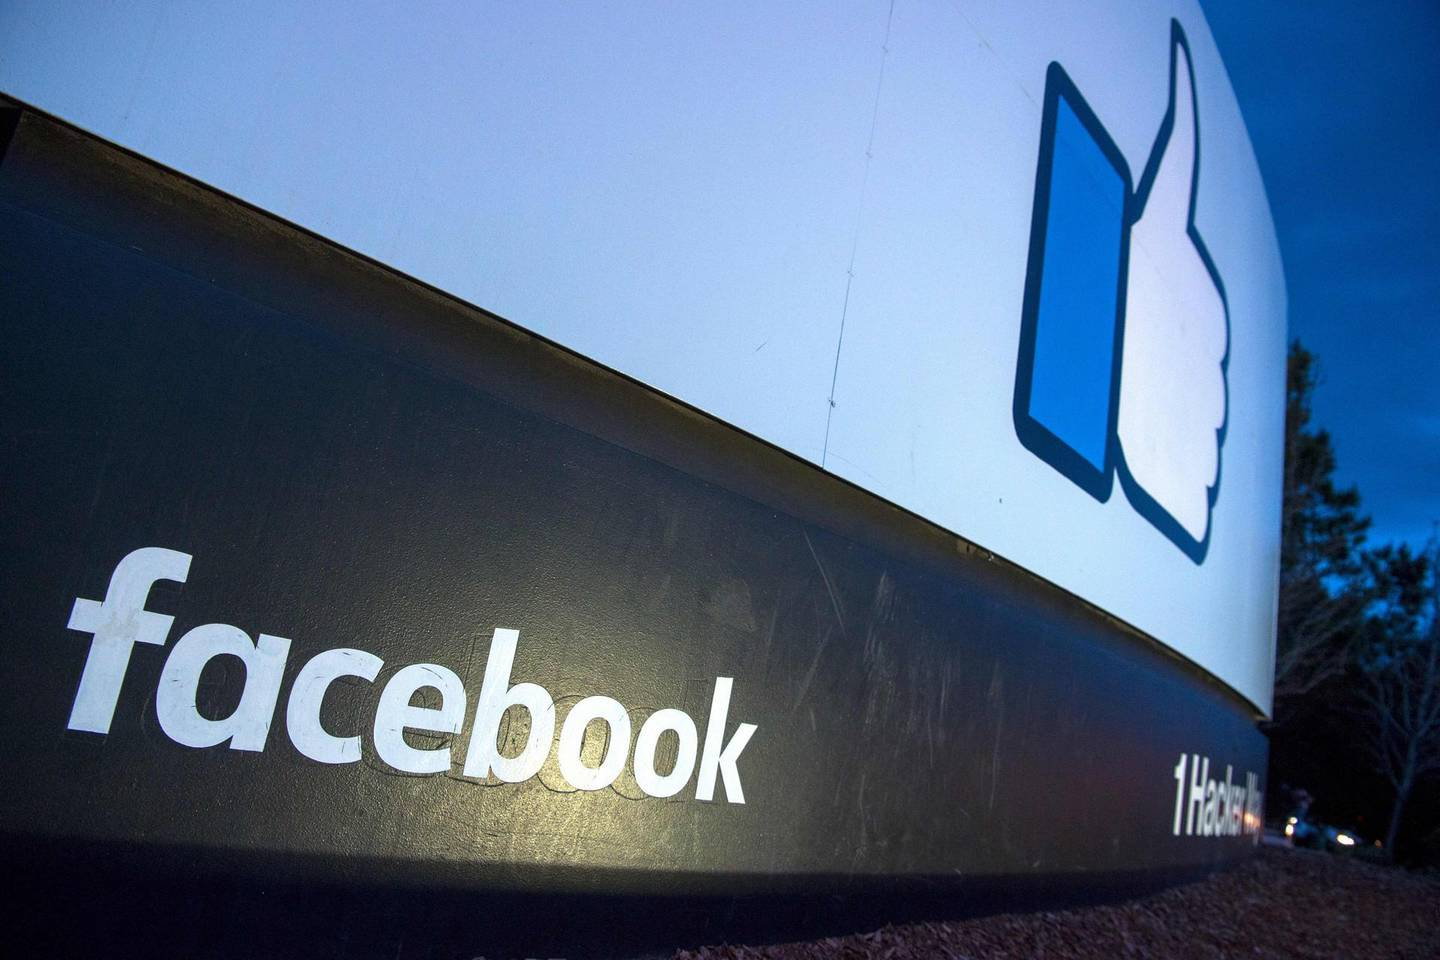 """(FILES) In this file photo taken on March 21, 2018 a lit sign is seen at the entrance to Facebook's corporate headquarters location in Menlo Park, California. Facebook said March 28, 2018 it would overhaul its privacy settings tools to put users """"more in control"""" of their information on the social media website.""""We've heard loud and clear that privacy settings and other important tools are too hard to find and that we must do more to keep people informed,"""" Chief Privacy Officer Erin Egan and Deputy General Counsel Ashlie Beringer said in a blog post.""""We're taking additional steps in the coming weeks to put people more in control of their privacy,"""" they confirmed.  / AFP PHOTO / JOSH EDELSON"""